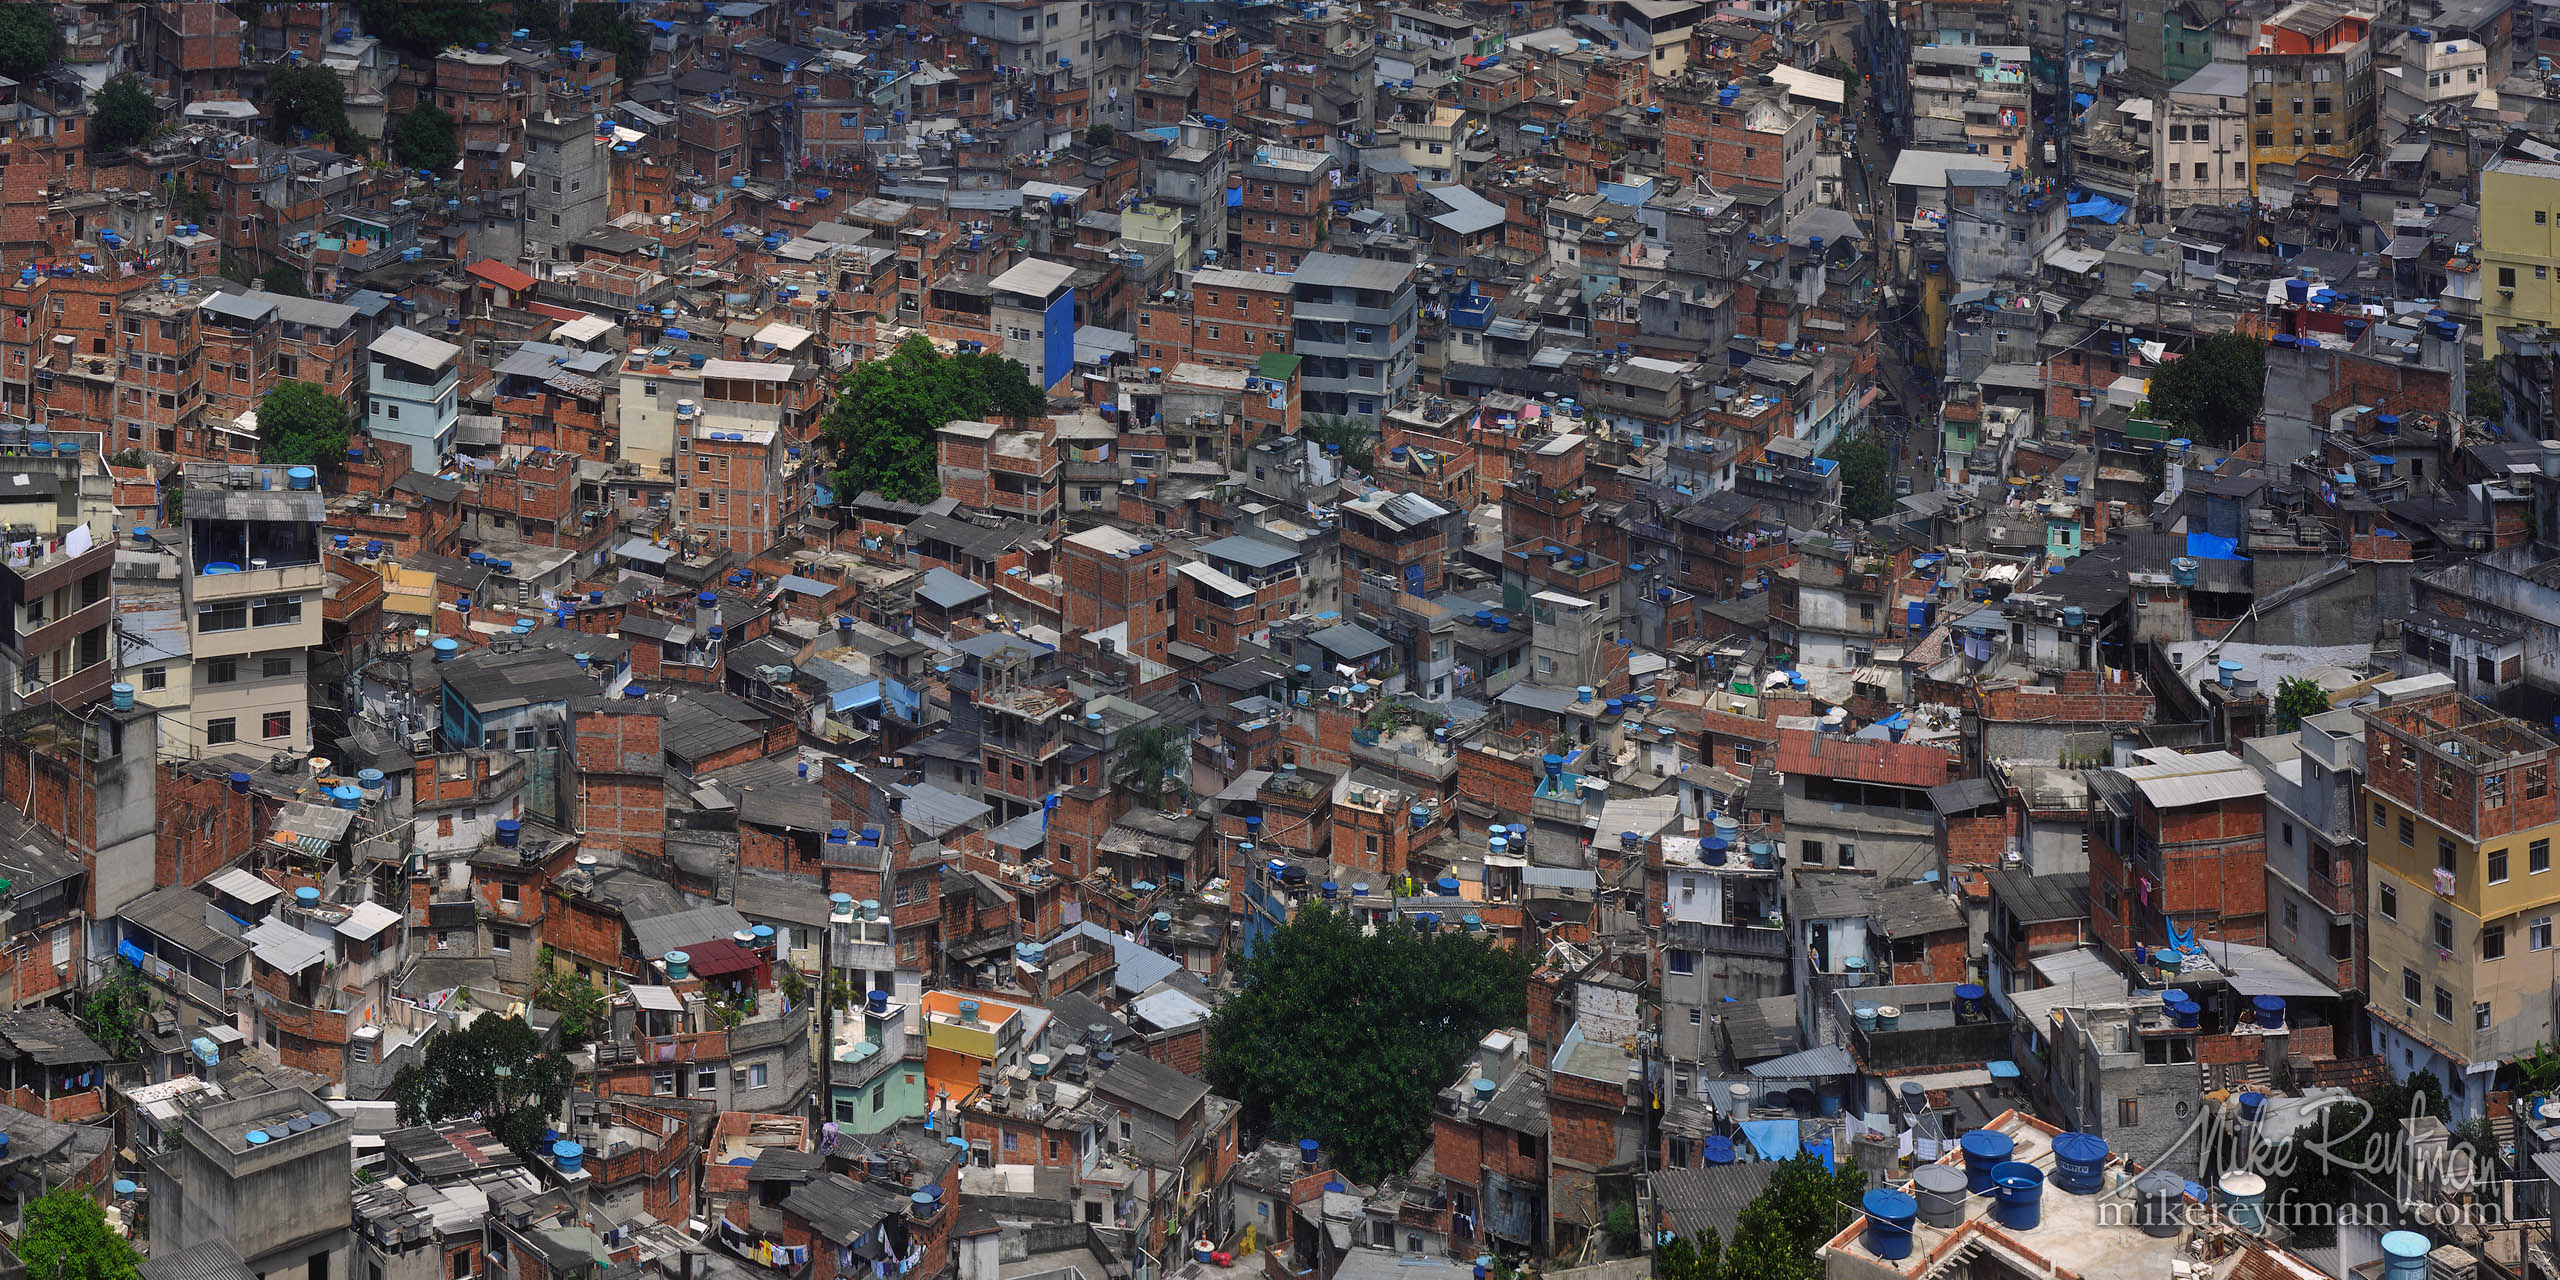 City of God. Favela Rocinha, Rio de Janeiro, Brazil. P12-MRM3X2530-44-Pano - Selected panoramic images with 2:1 aspect ratio - Mike Reyfman Photography